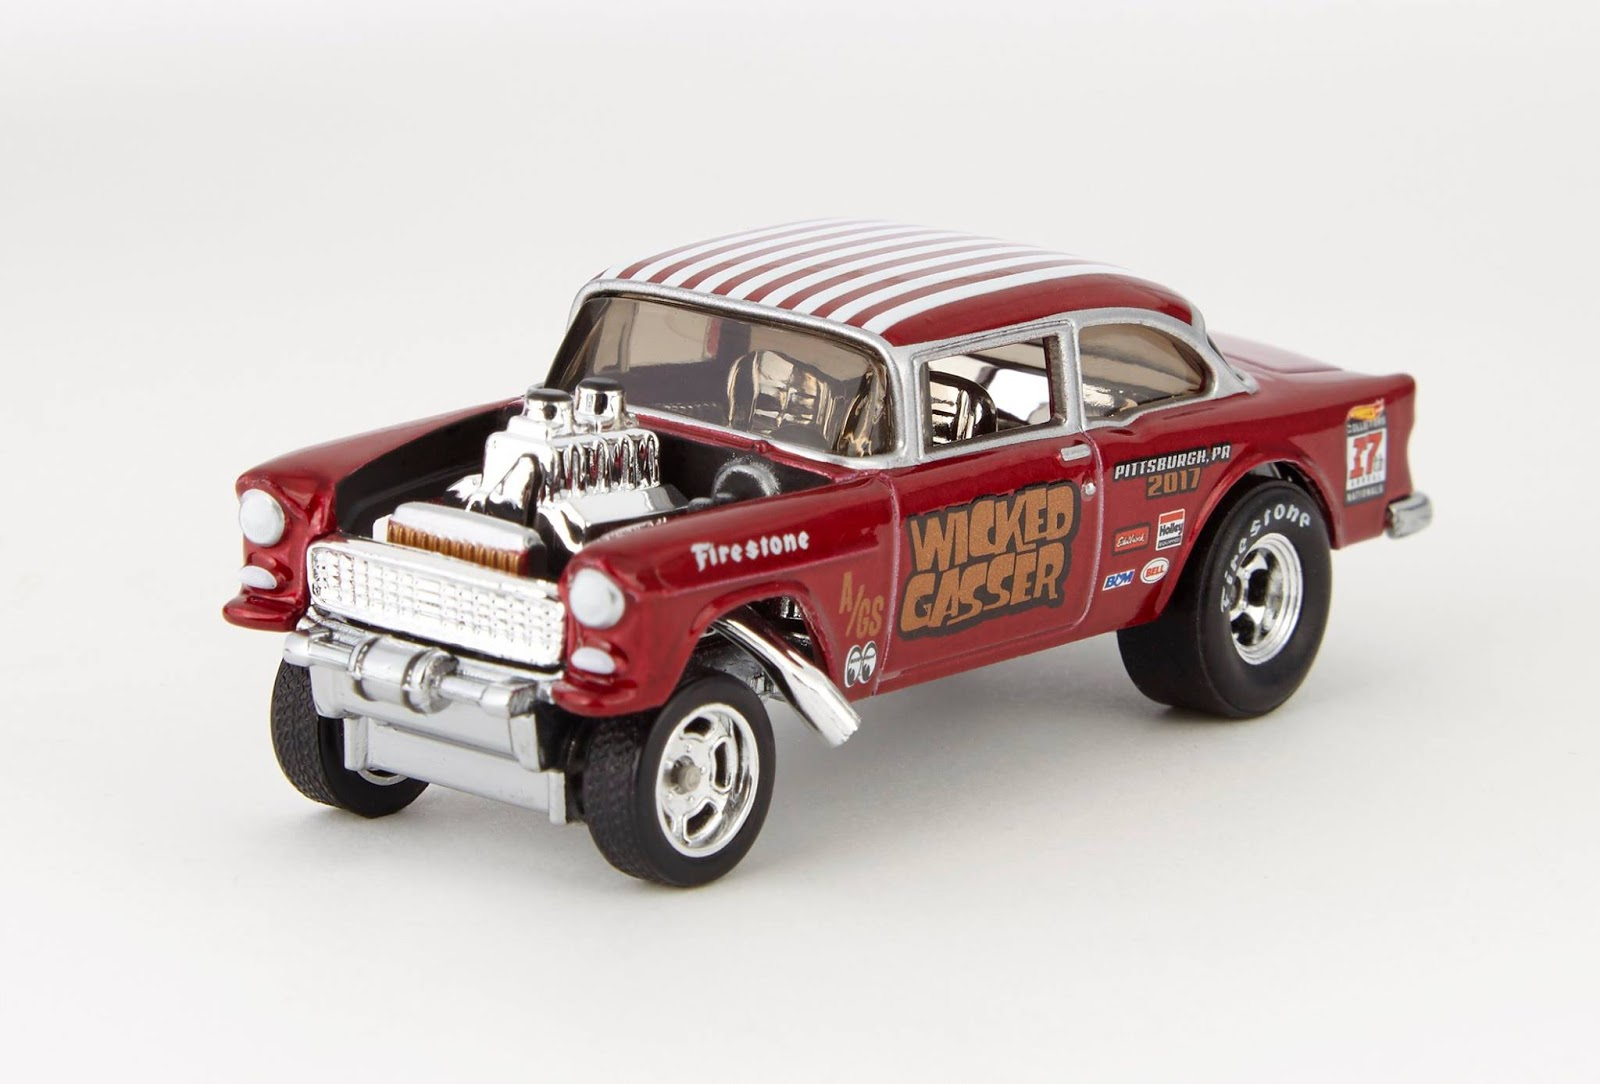 The '55 Bel Air Candy Striper Gasser's cousin is debuting at